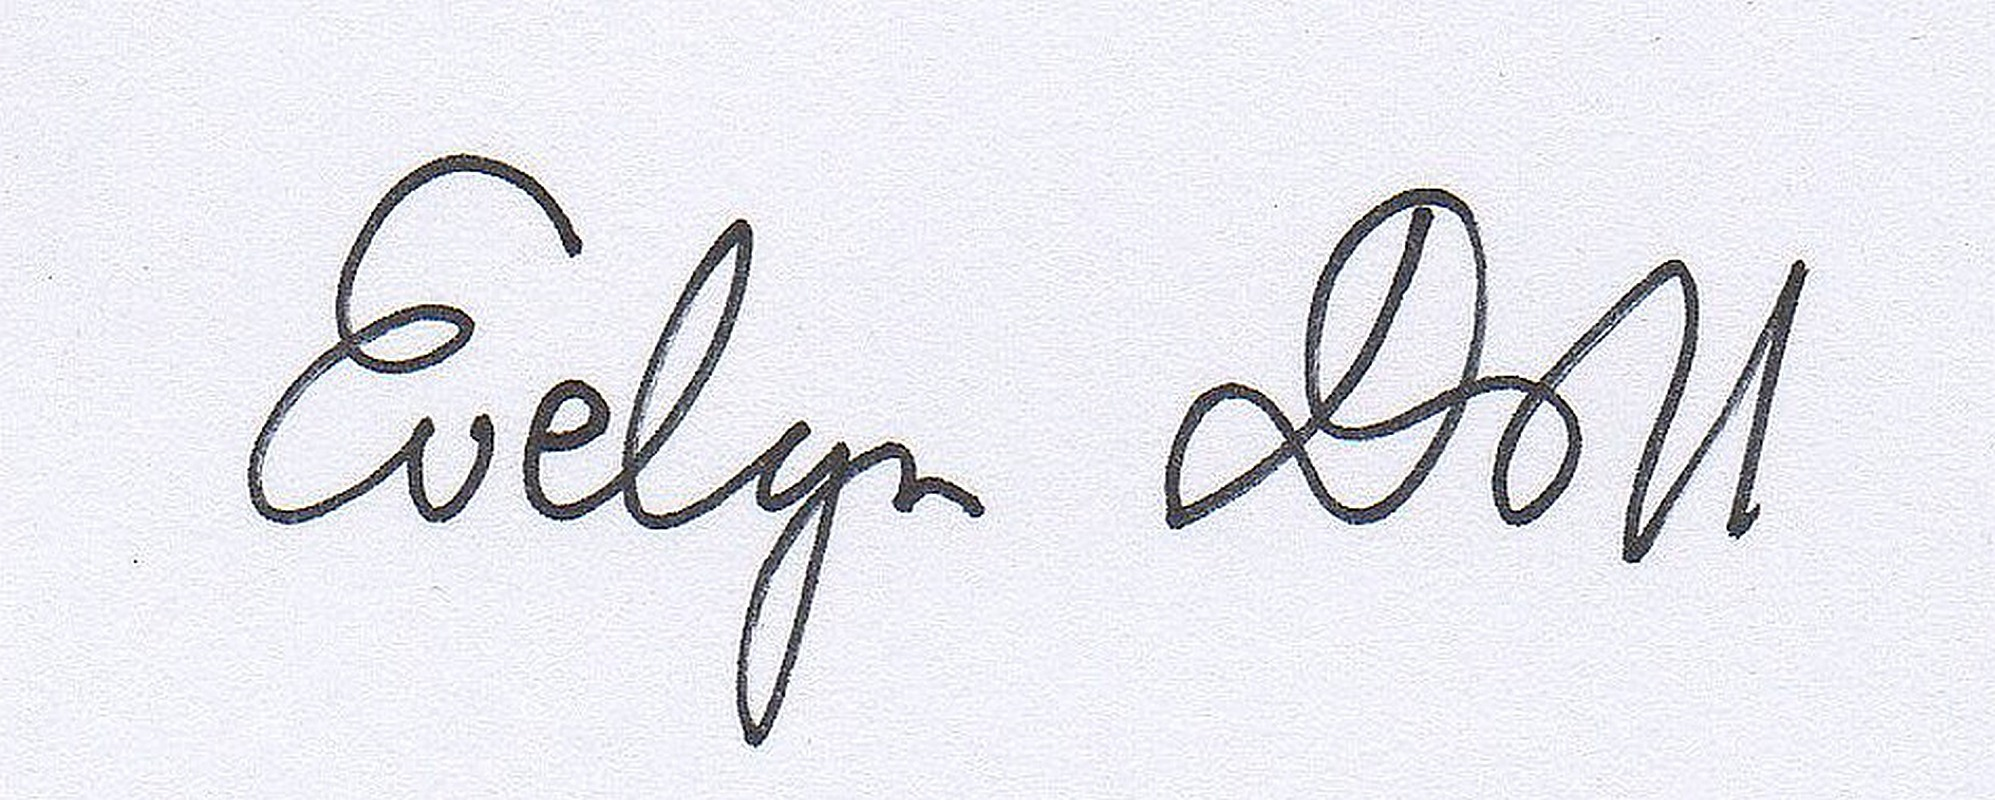 Evelyn Doll's Signature